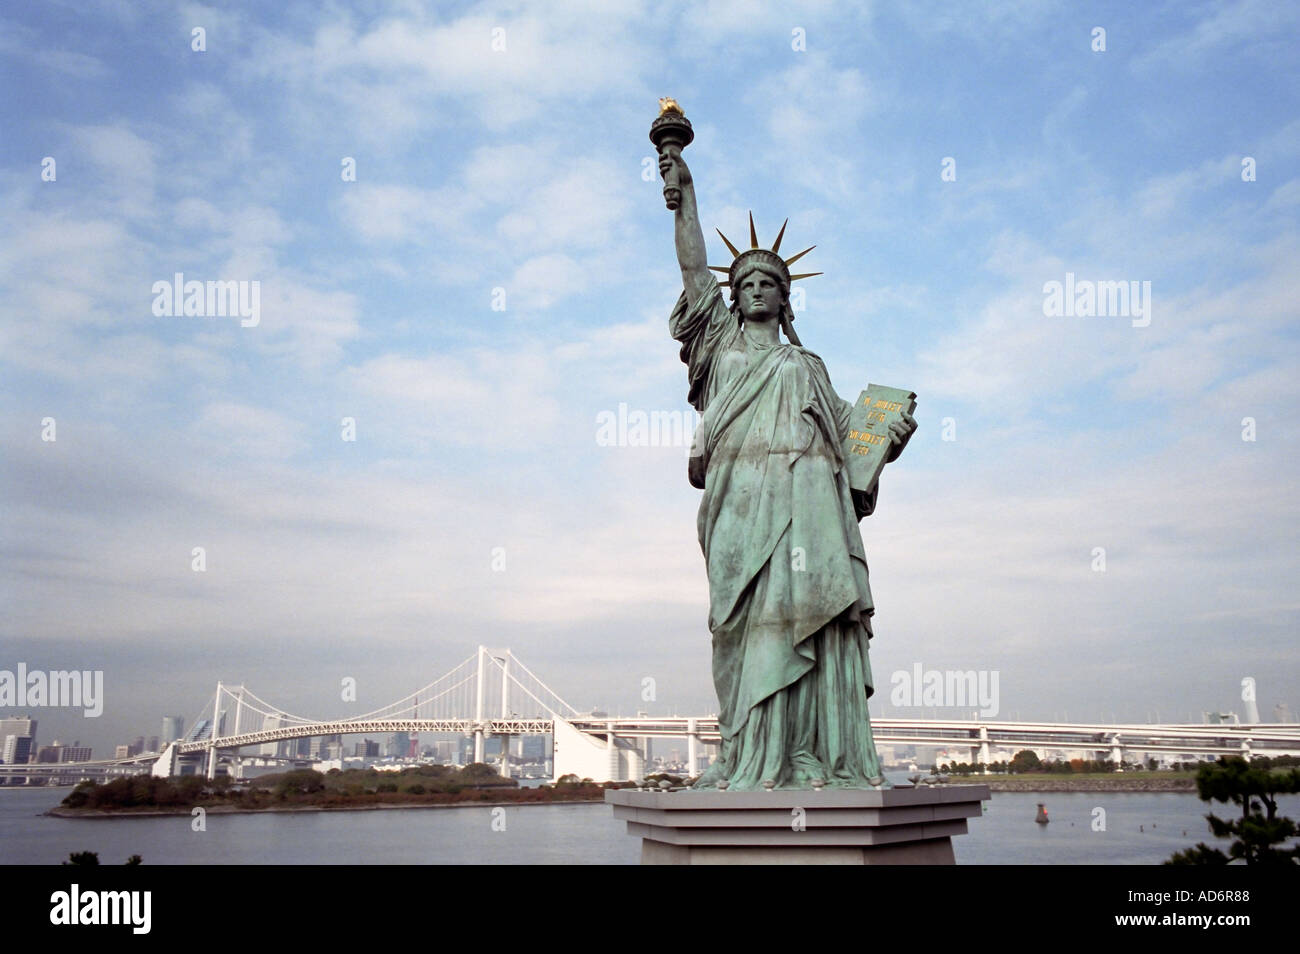 how to go to odaiba statue of liberty